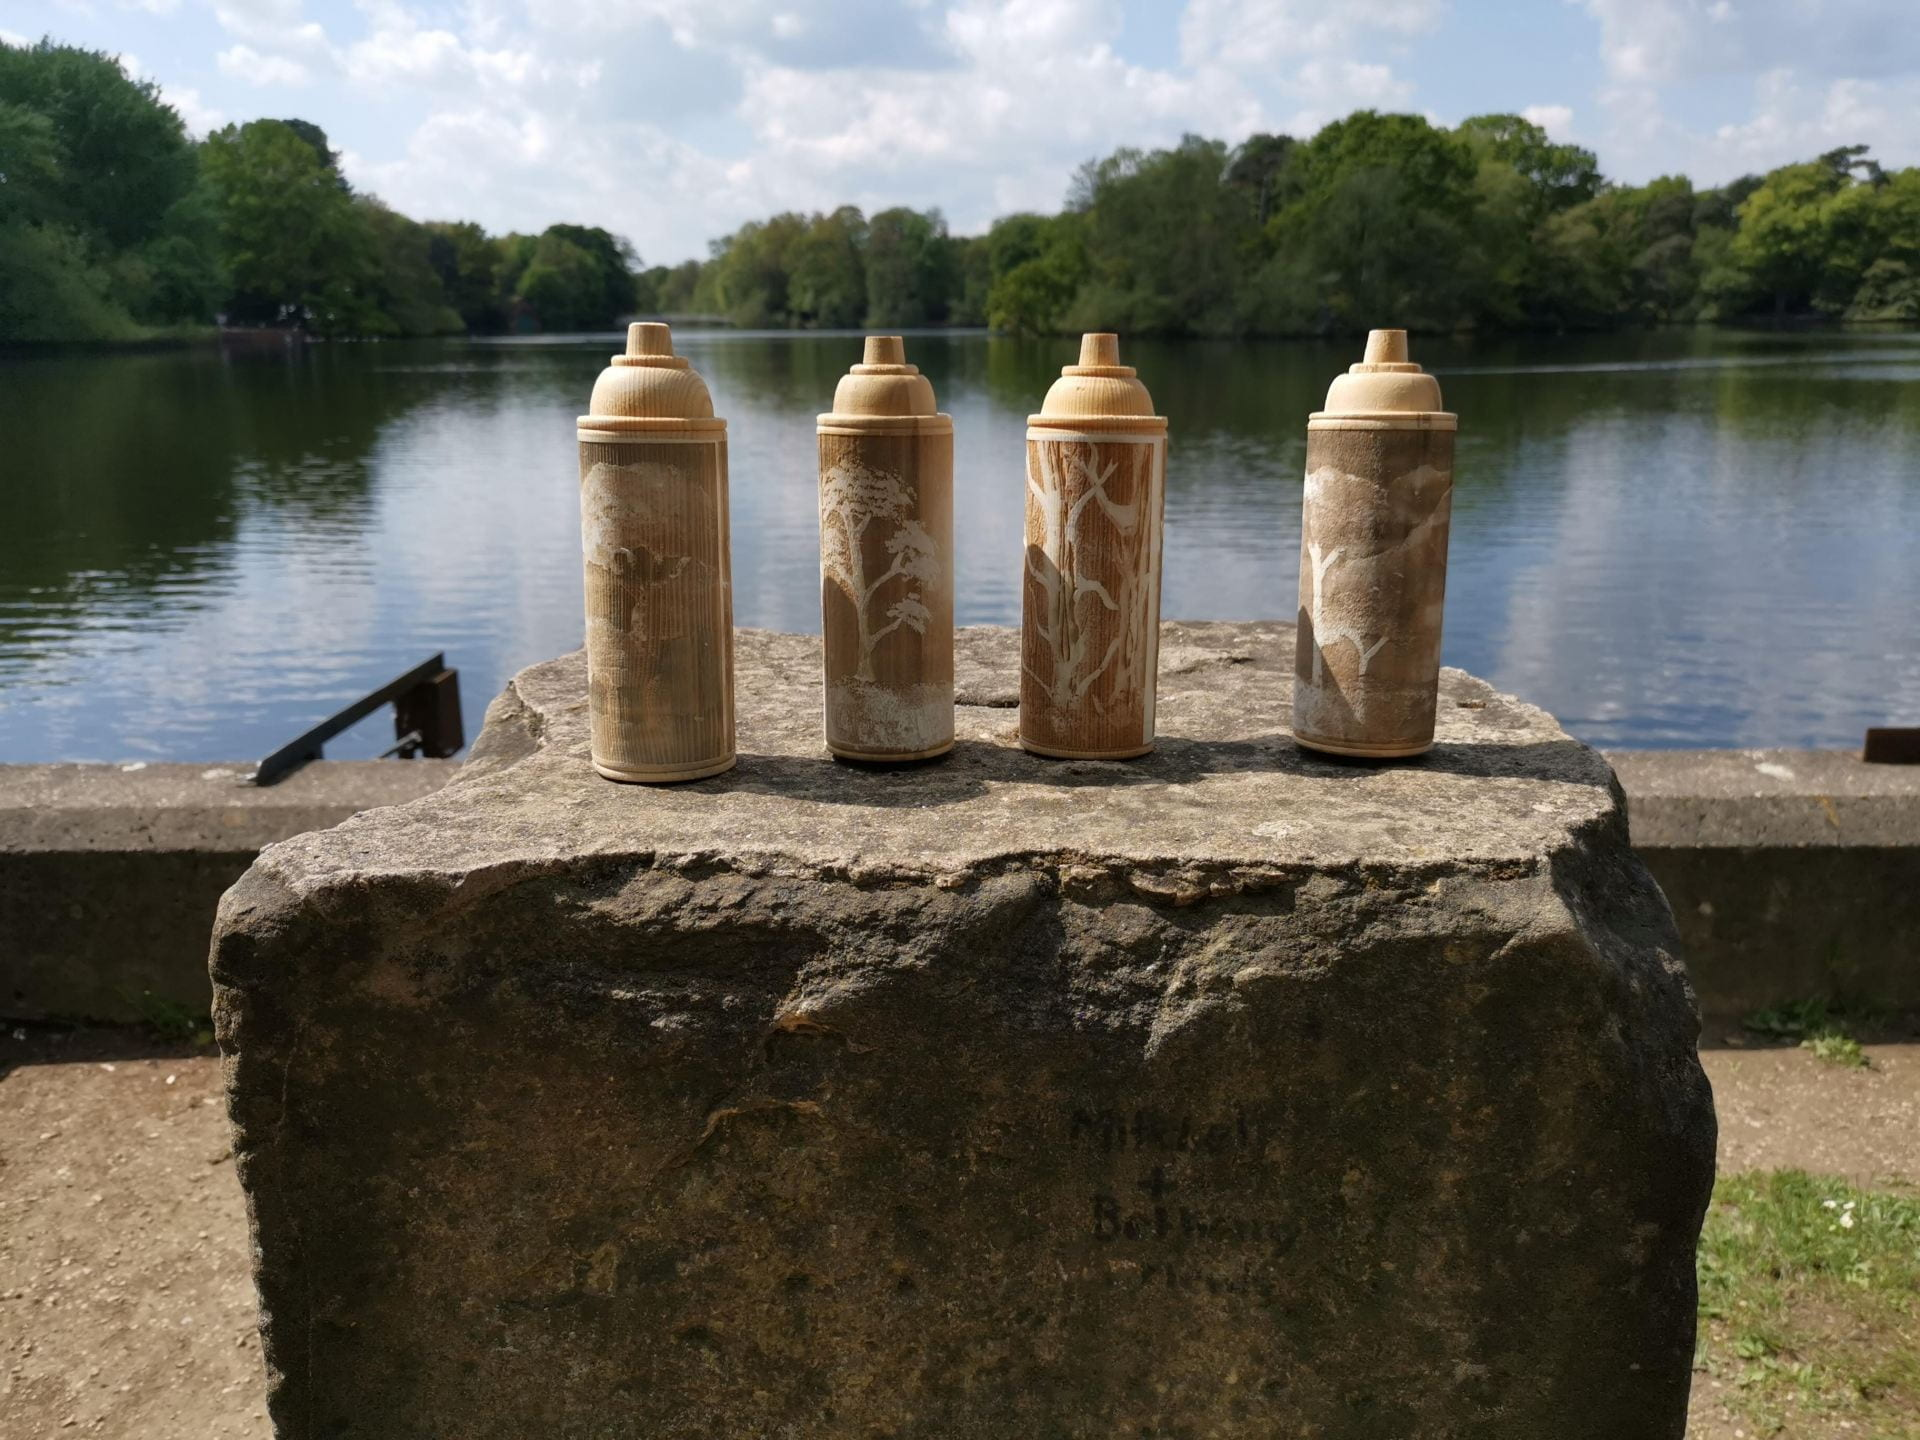 Four wooden spray paint cans on a rock, a lake in the background, each can has trees engraved into them.